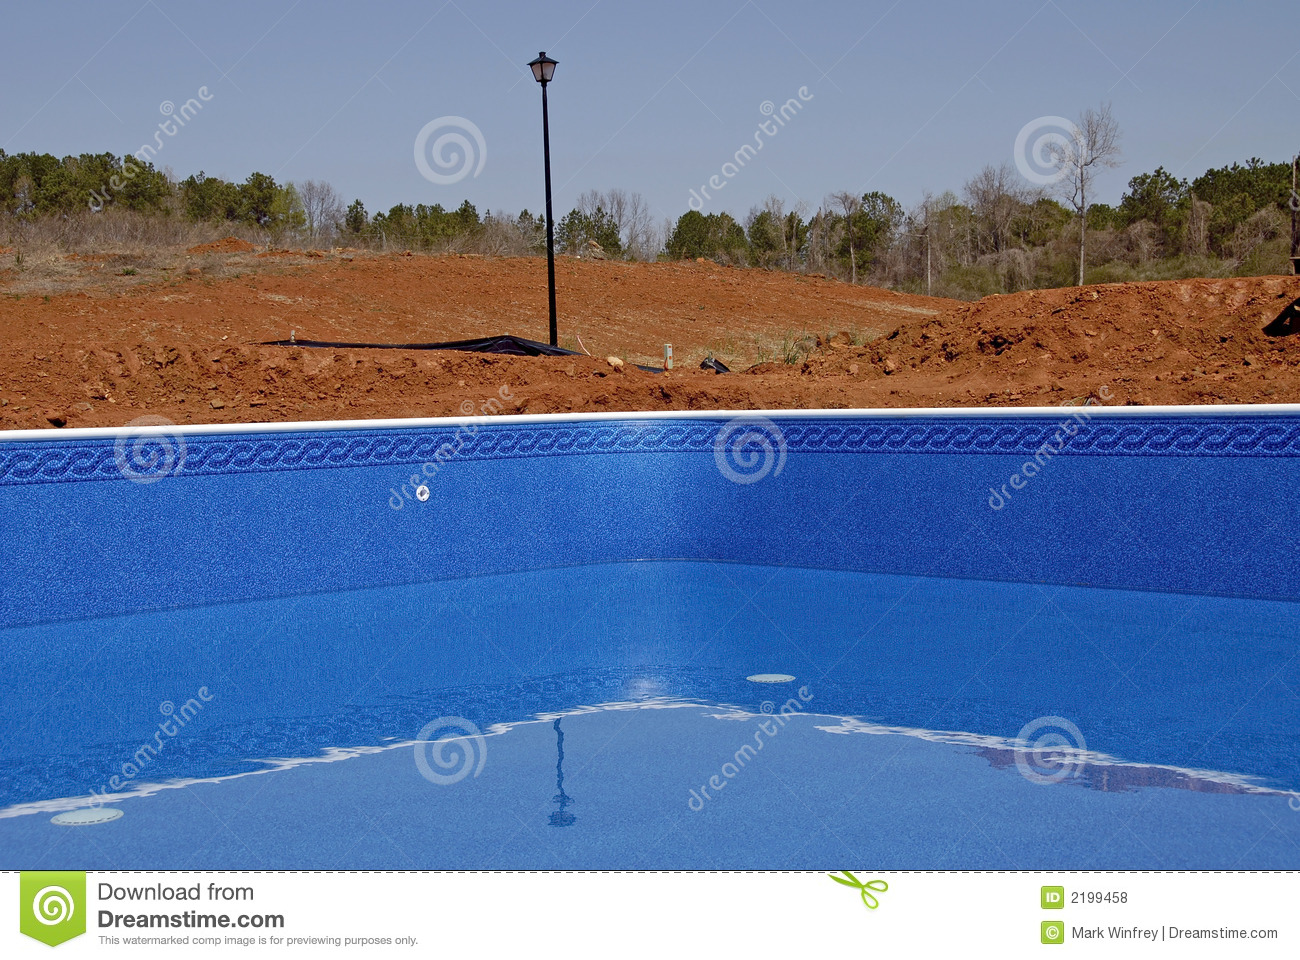 New swimming pool liner royalty free stock photos image for New swimming pool